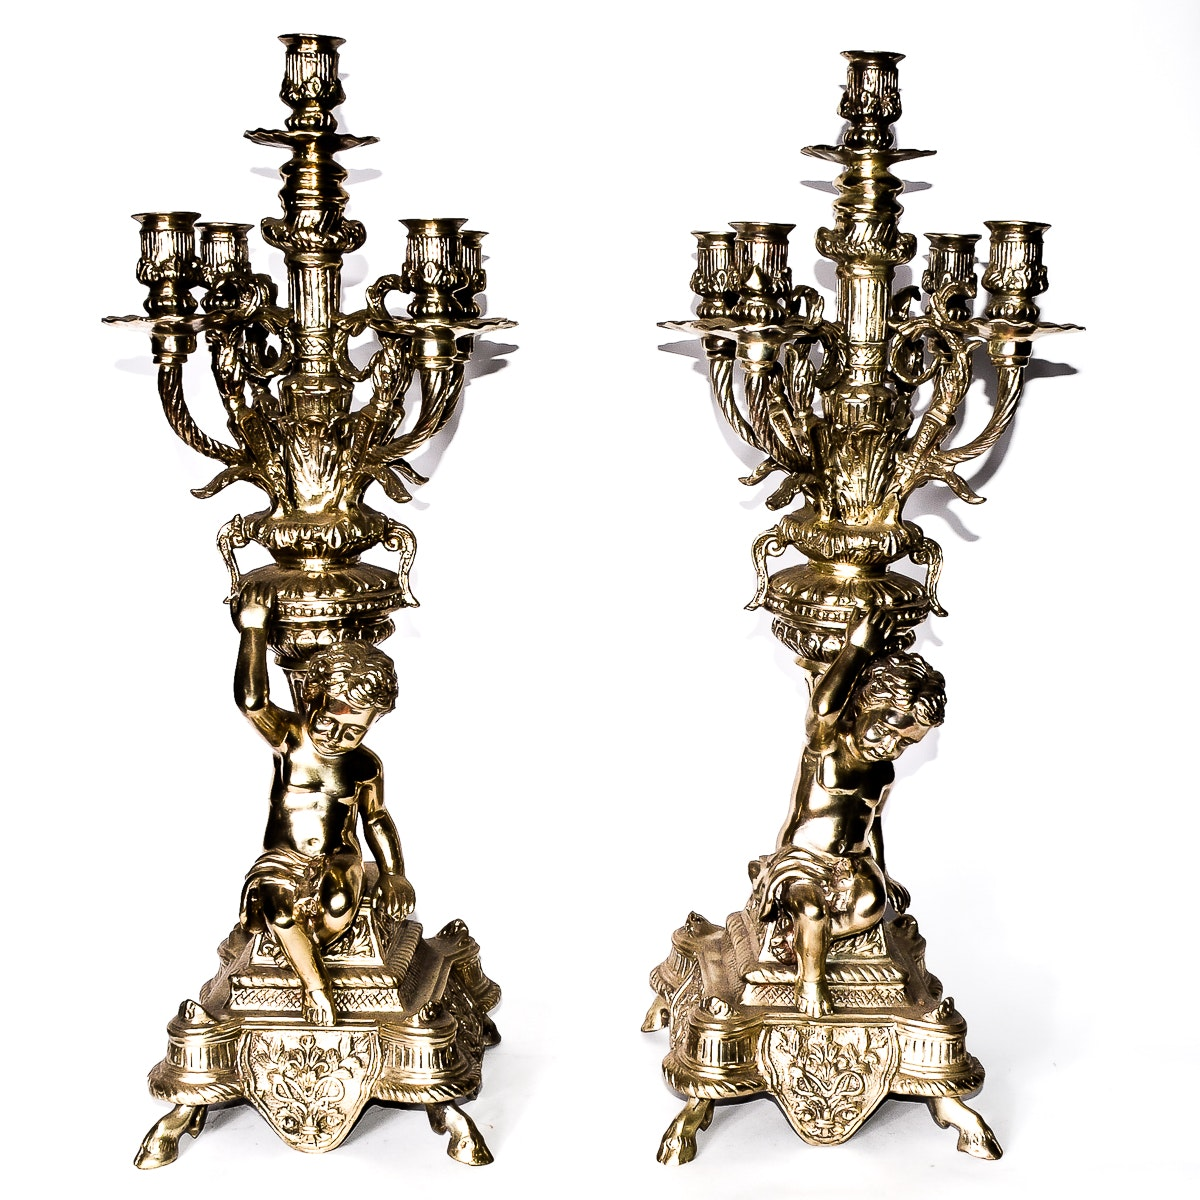 Pair of Silver Plated Candelabras with Cherubs